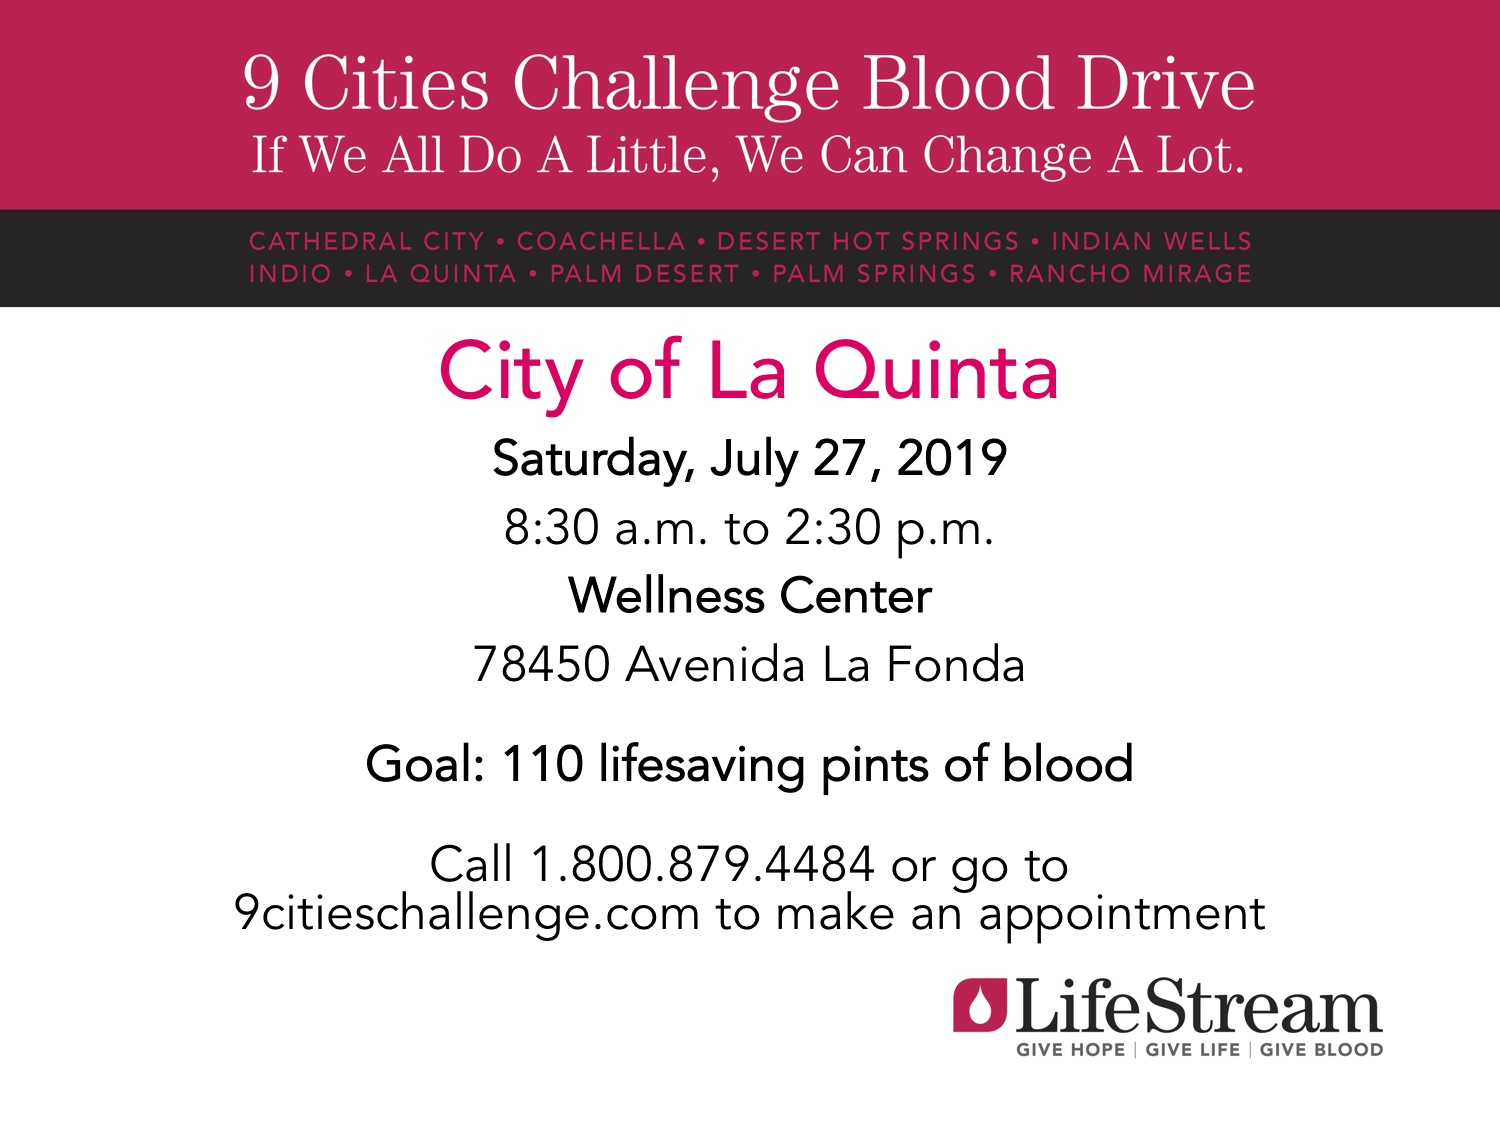 Lifestream 9 Cities Challenge PowerPoint Slide - City of La Quinta 2019  -  Read-Only